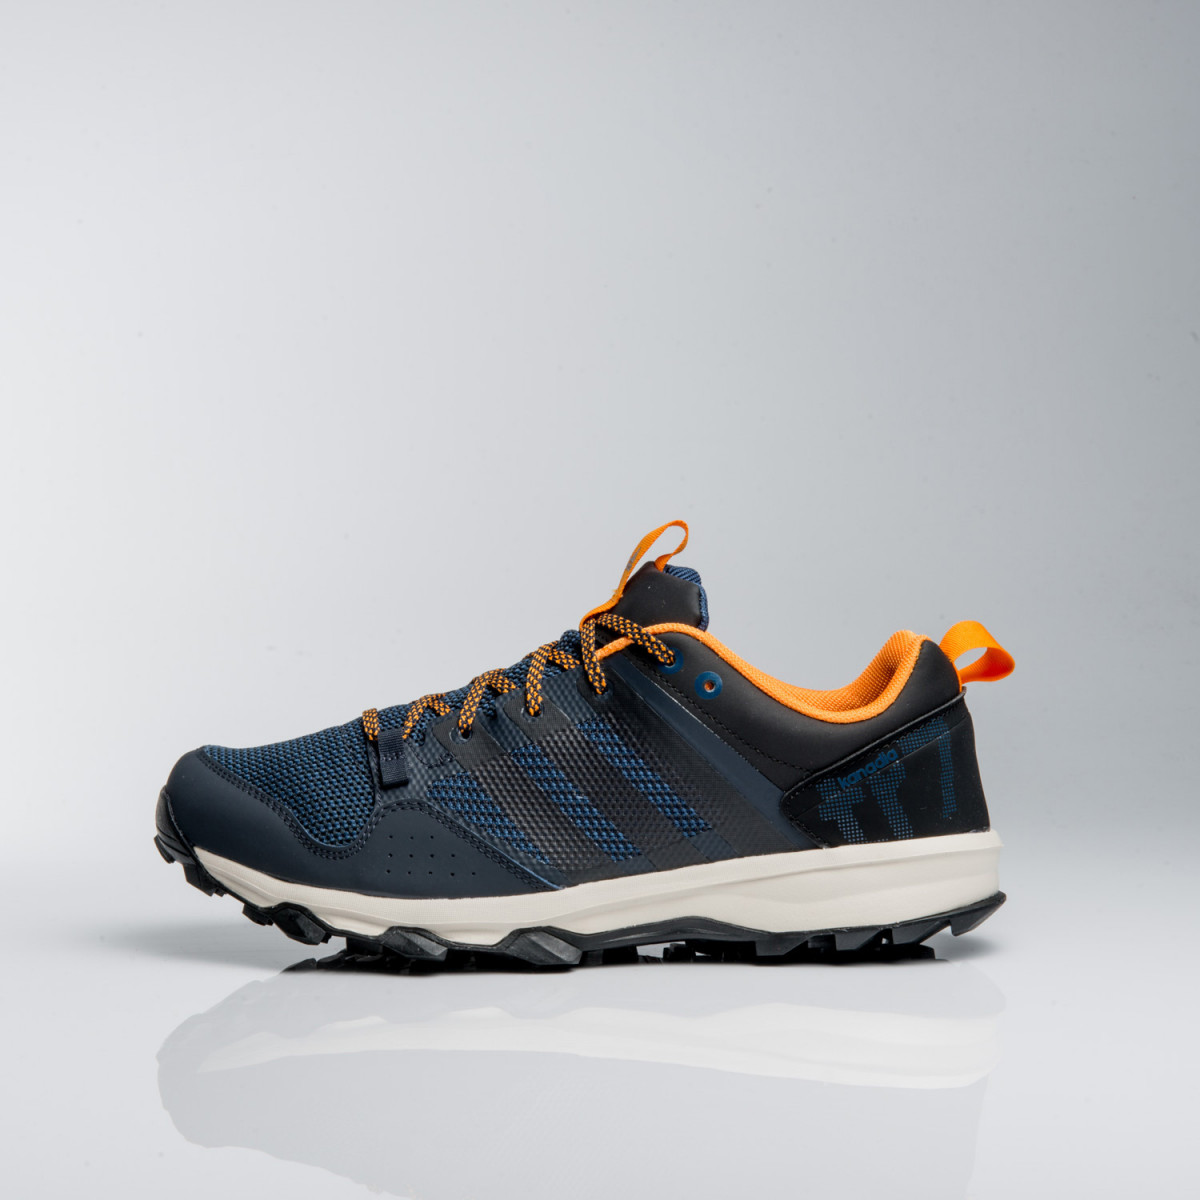 ZAPATILLAS ADIDAS KANADIA 7 TR